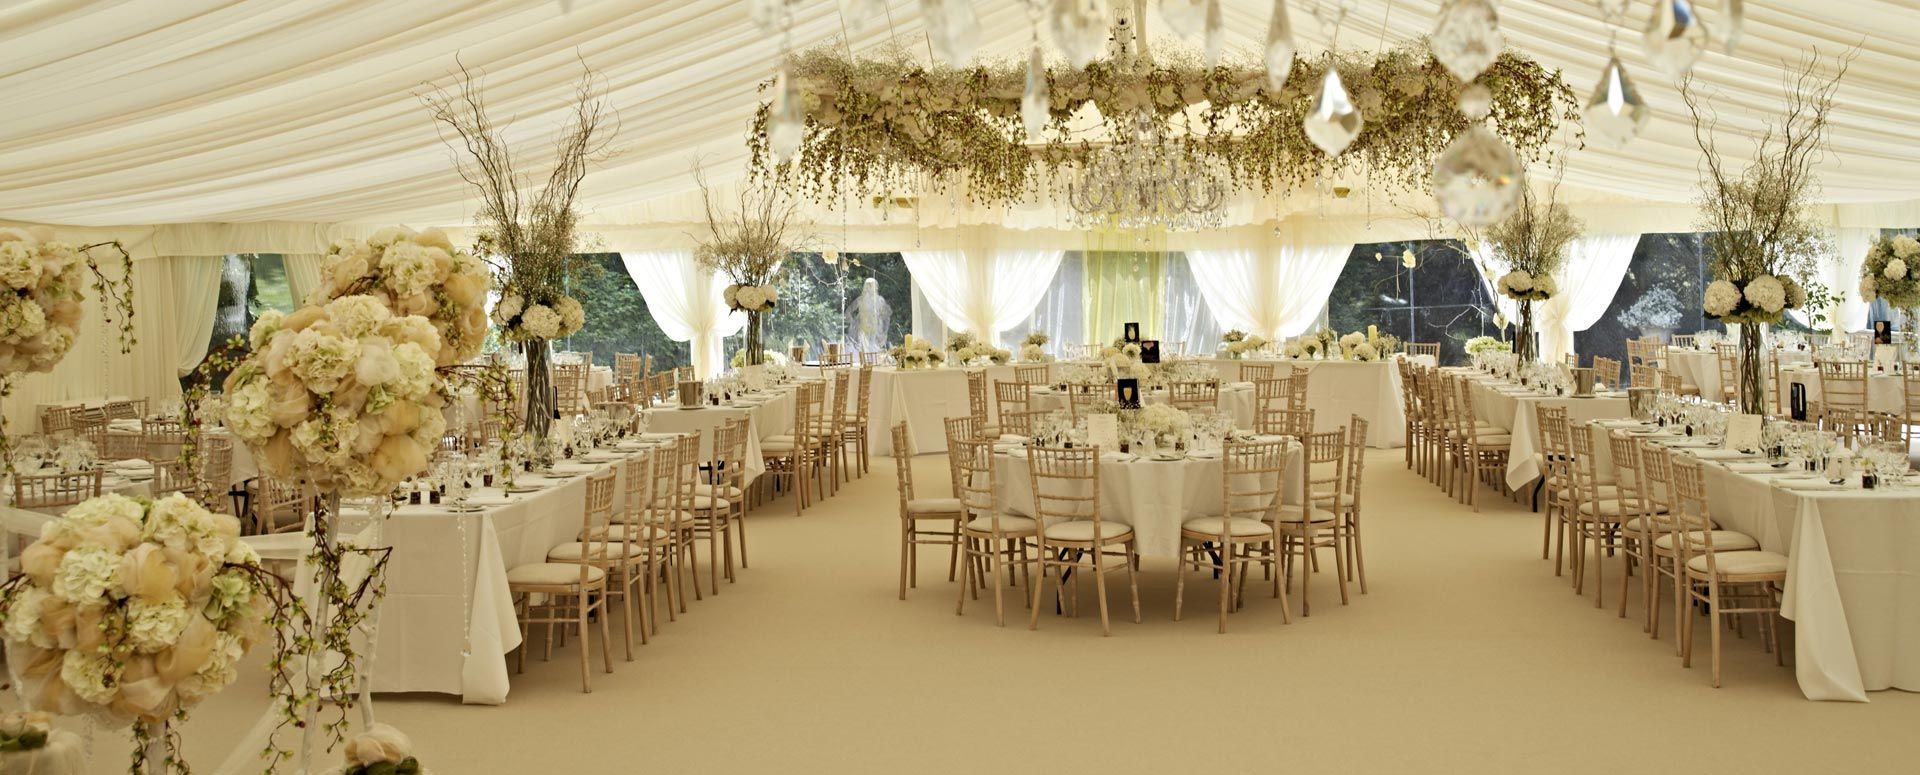 Wedding Marquees Google Search